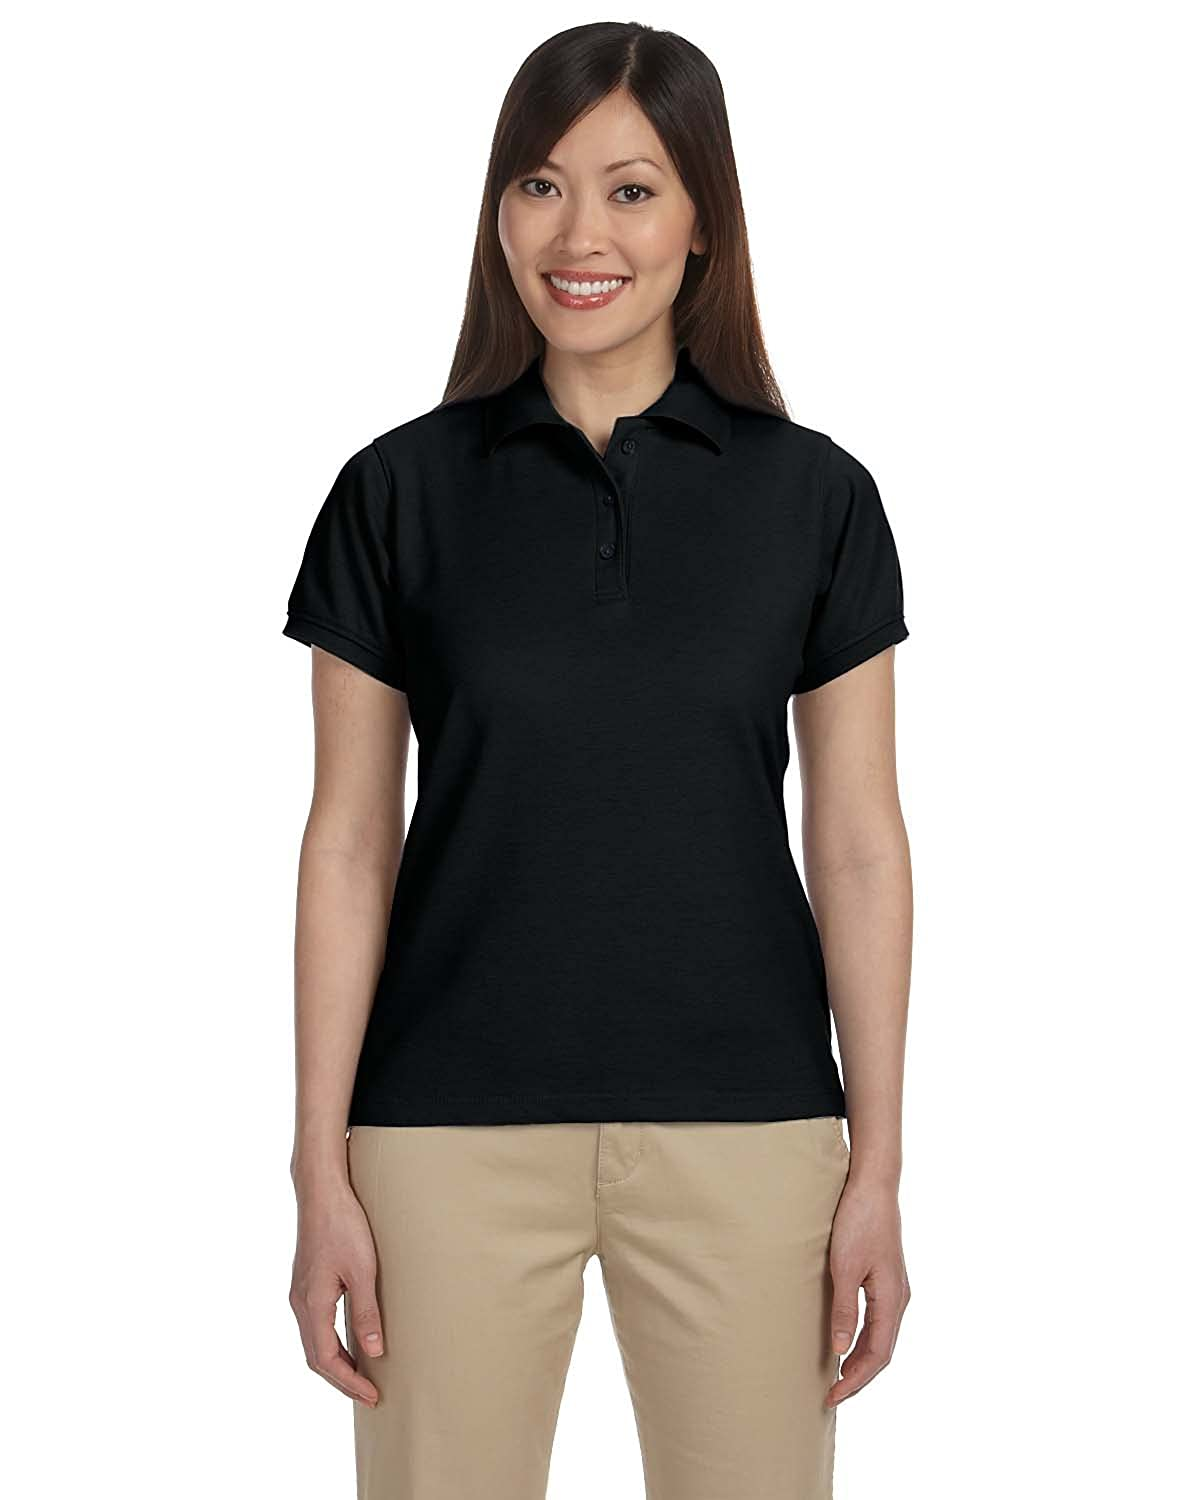 Ladies 5 oz BLACK S Ladies 5 oz Blend-Tek™ Polo Easy Blend Plus Polo